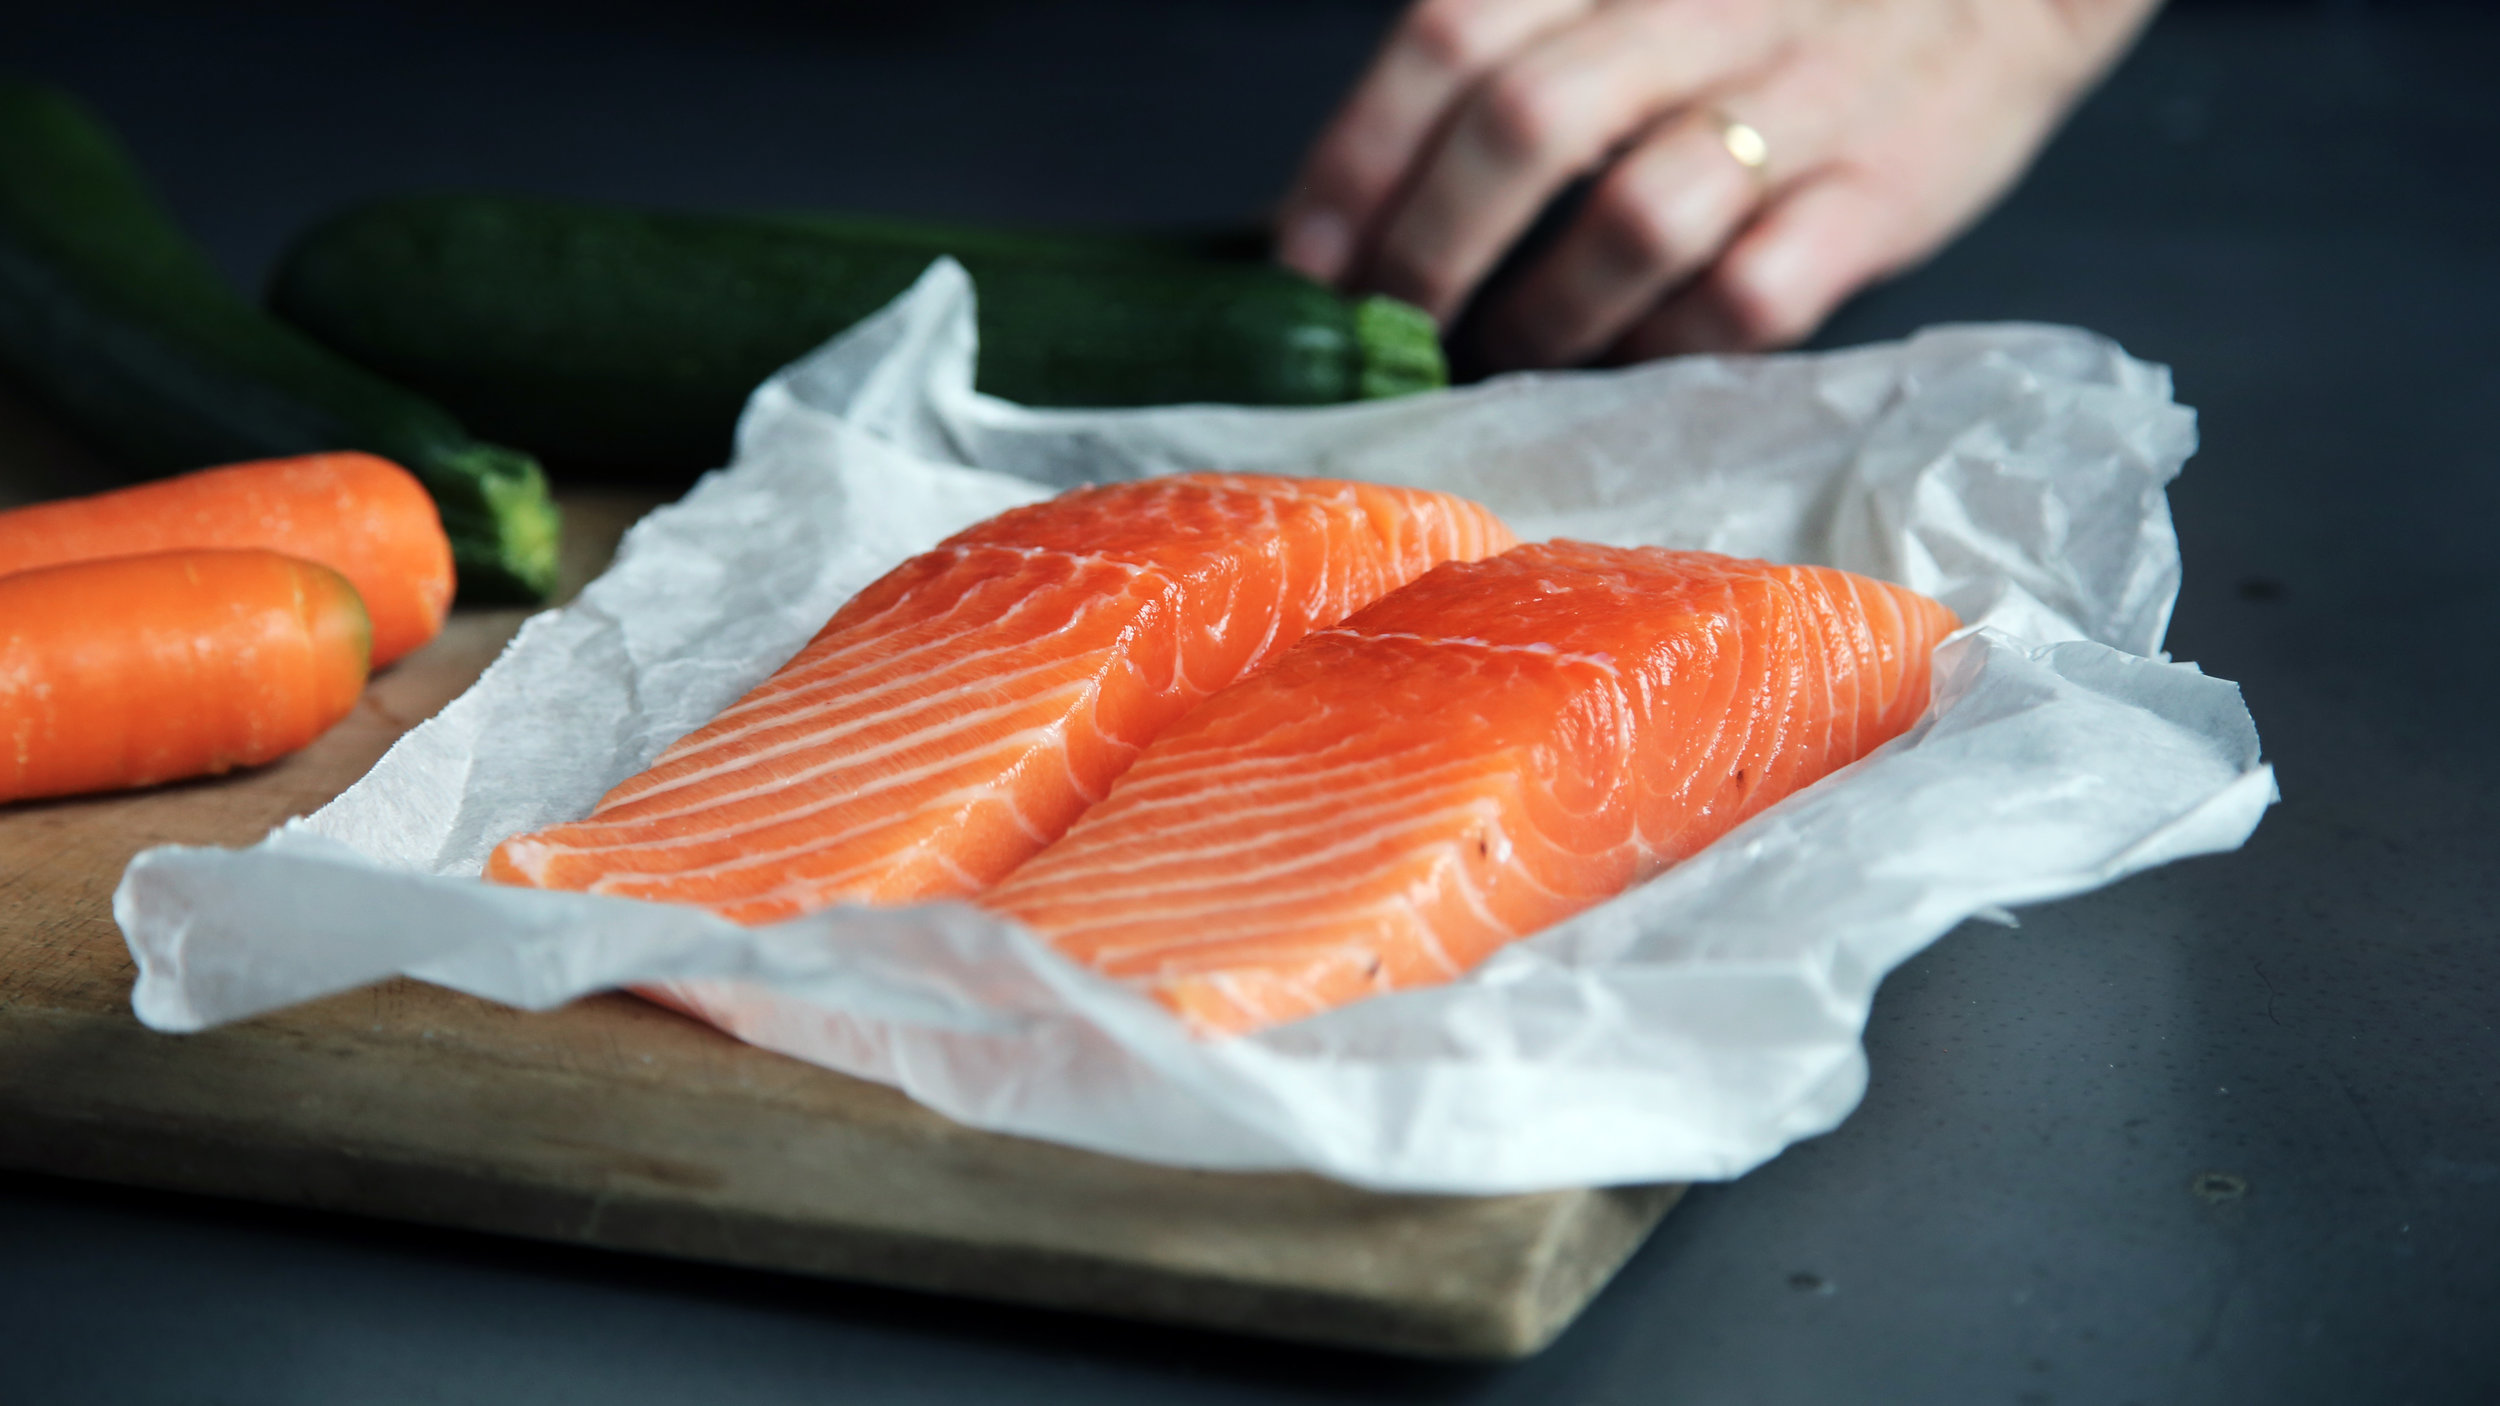 Less treatment means greater quality salmon and increased production